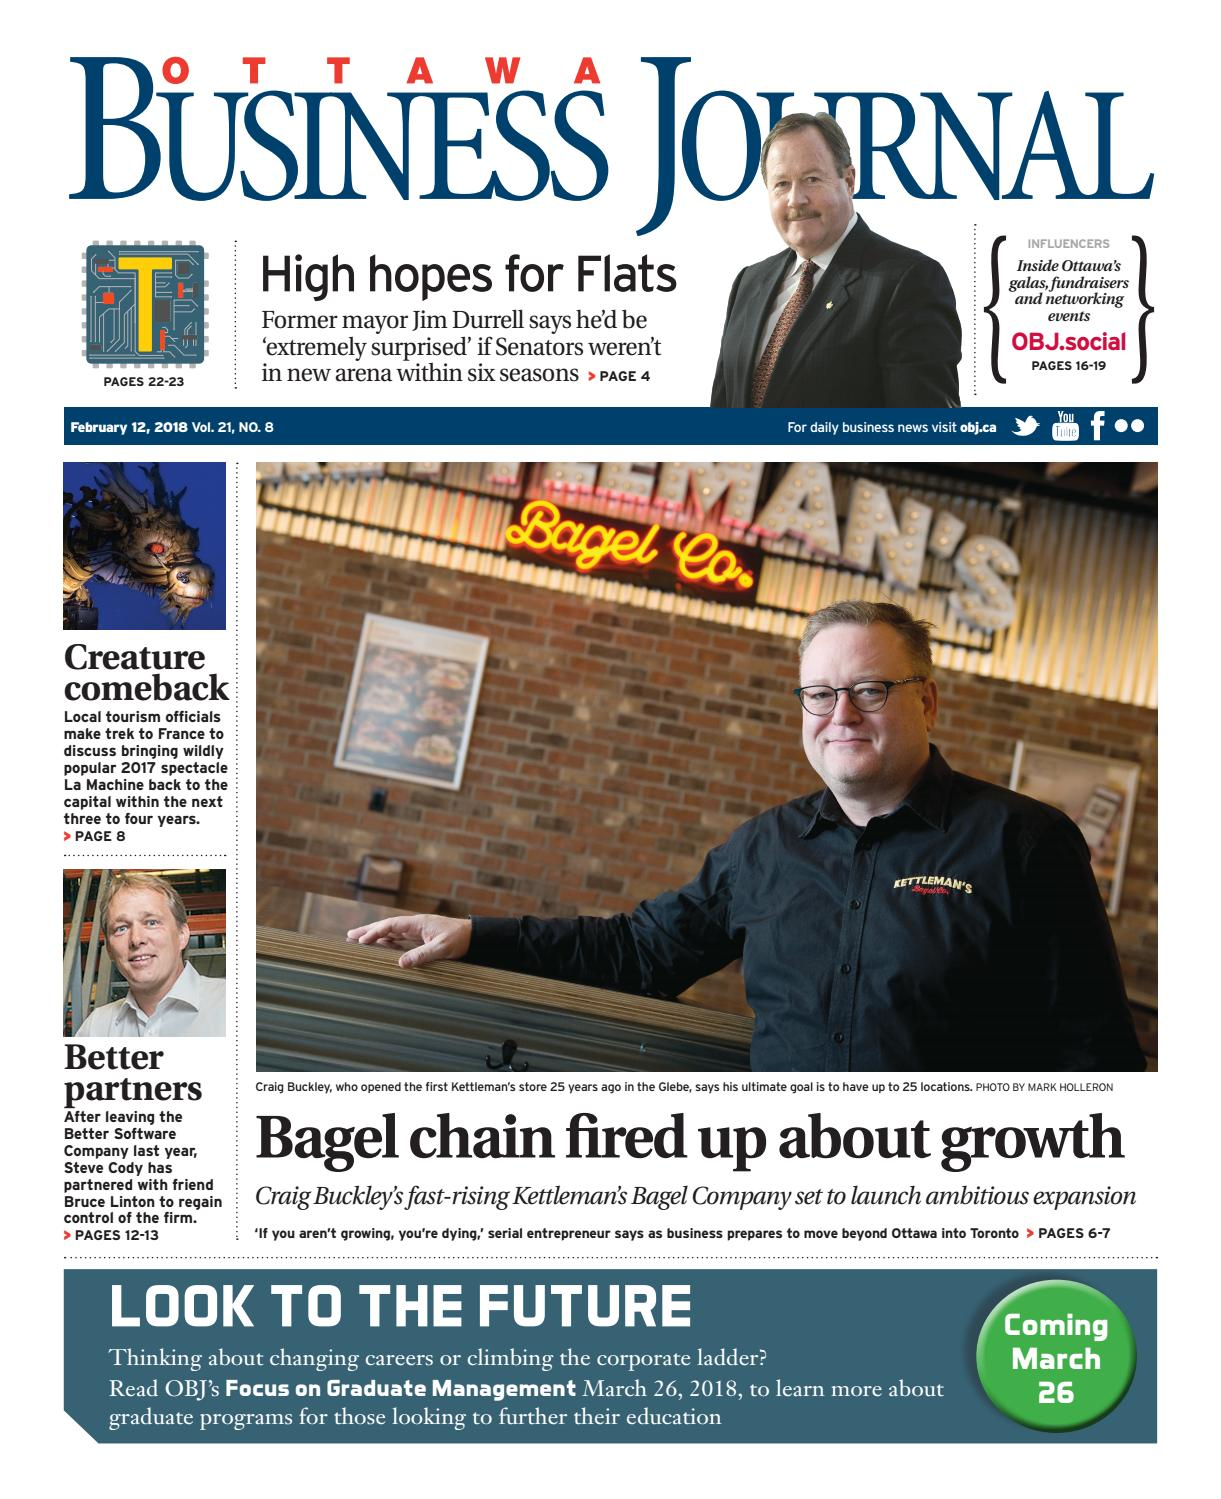 Ottawa Business Journal February 12, 2018 by Great River